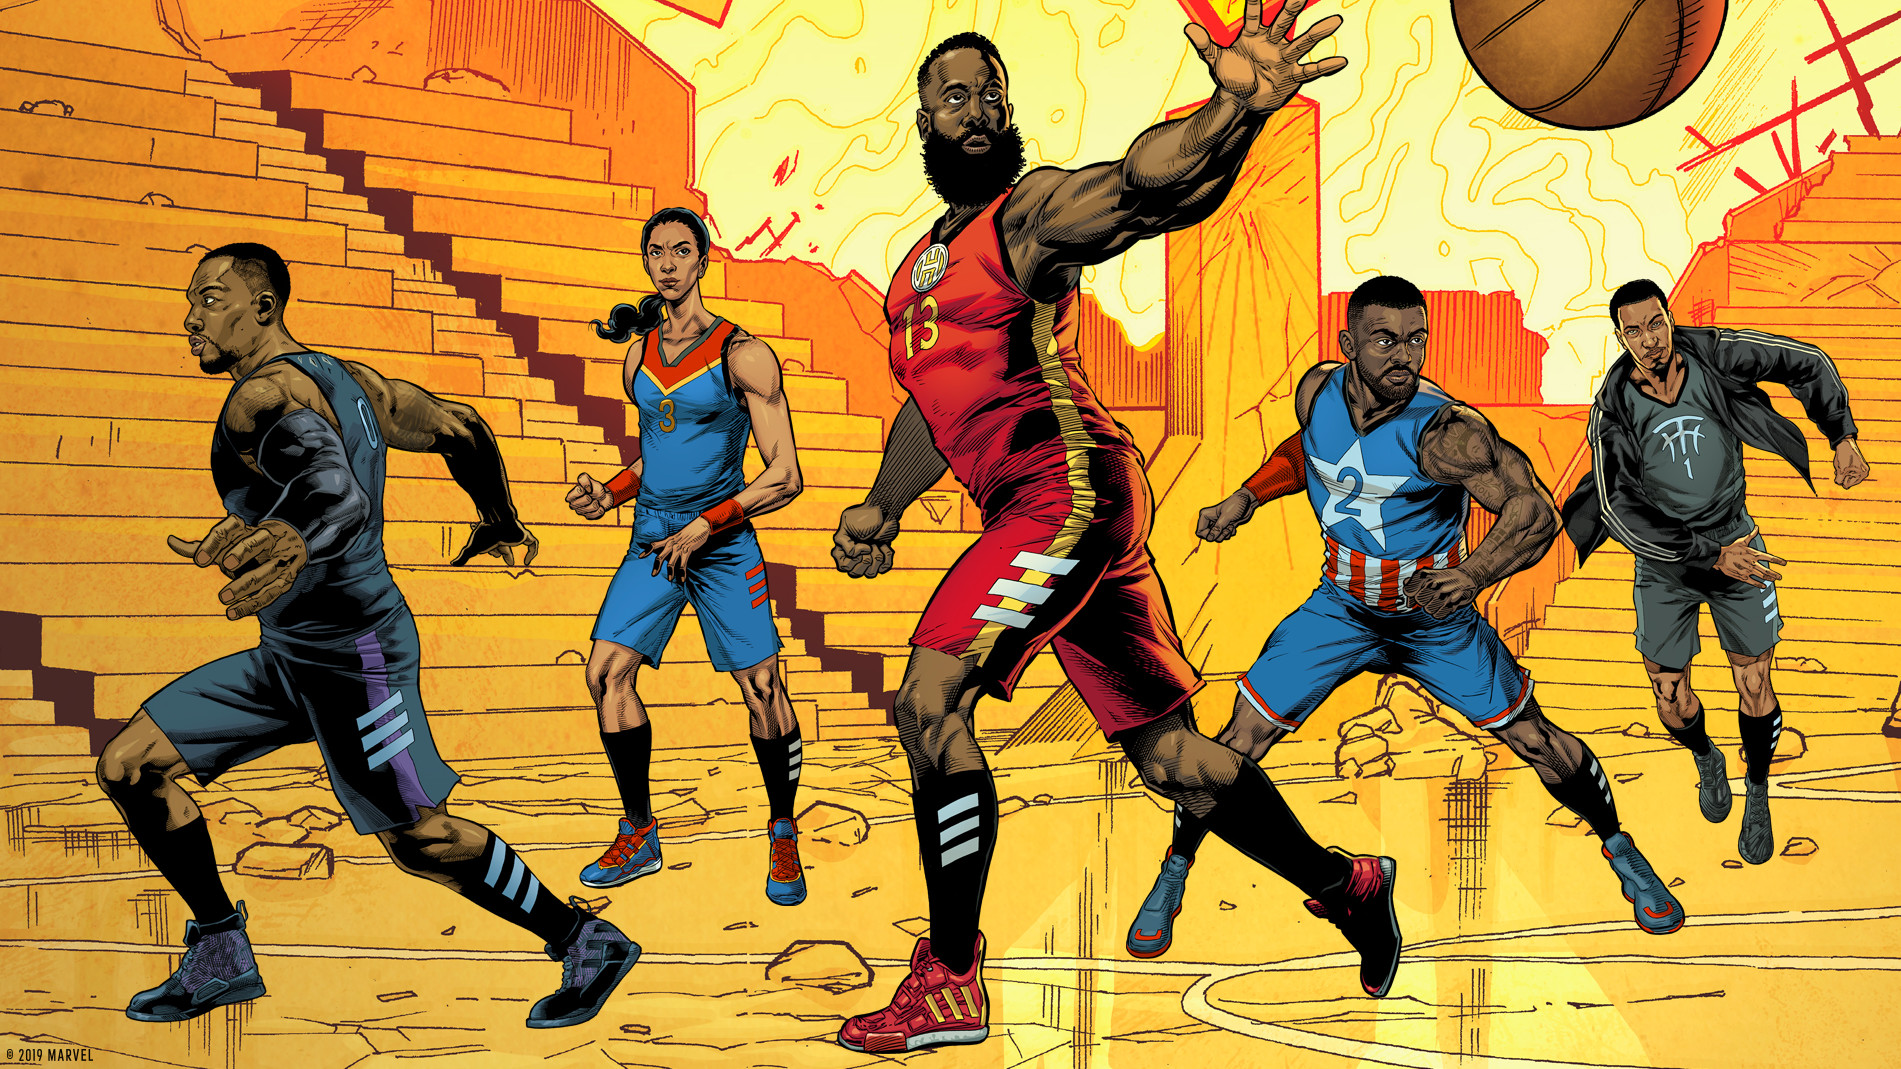 NYCC 2019: adidas and Foot Locker Team Up for 'Made 4 Marvel